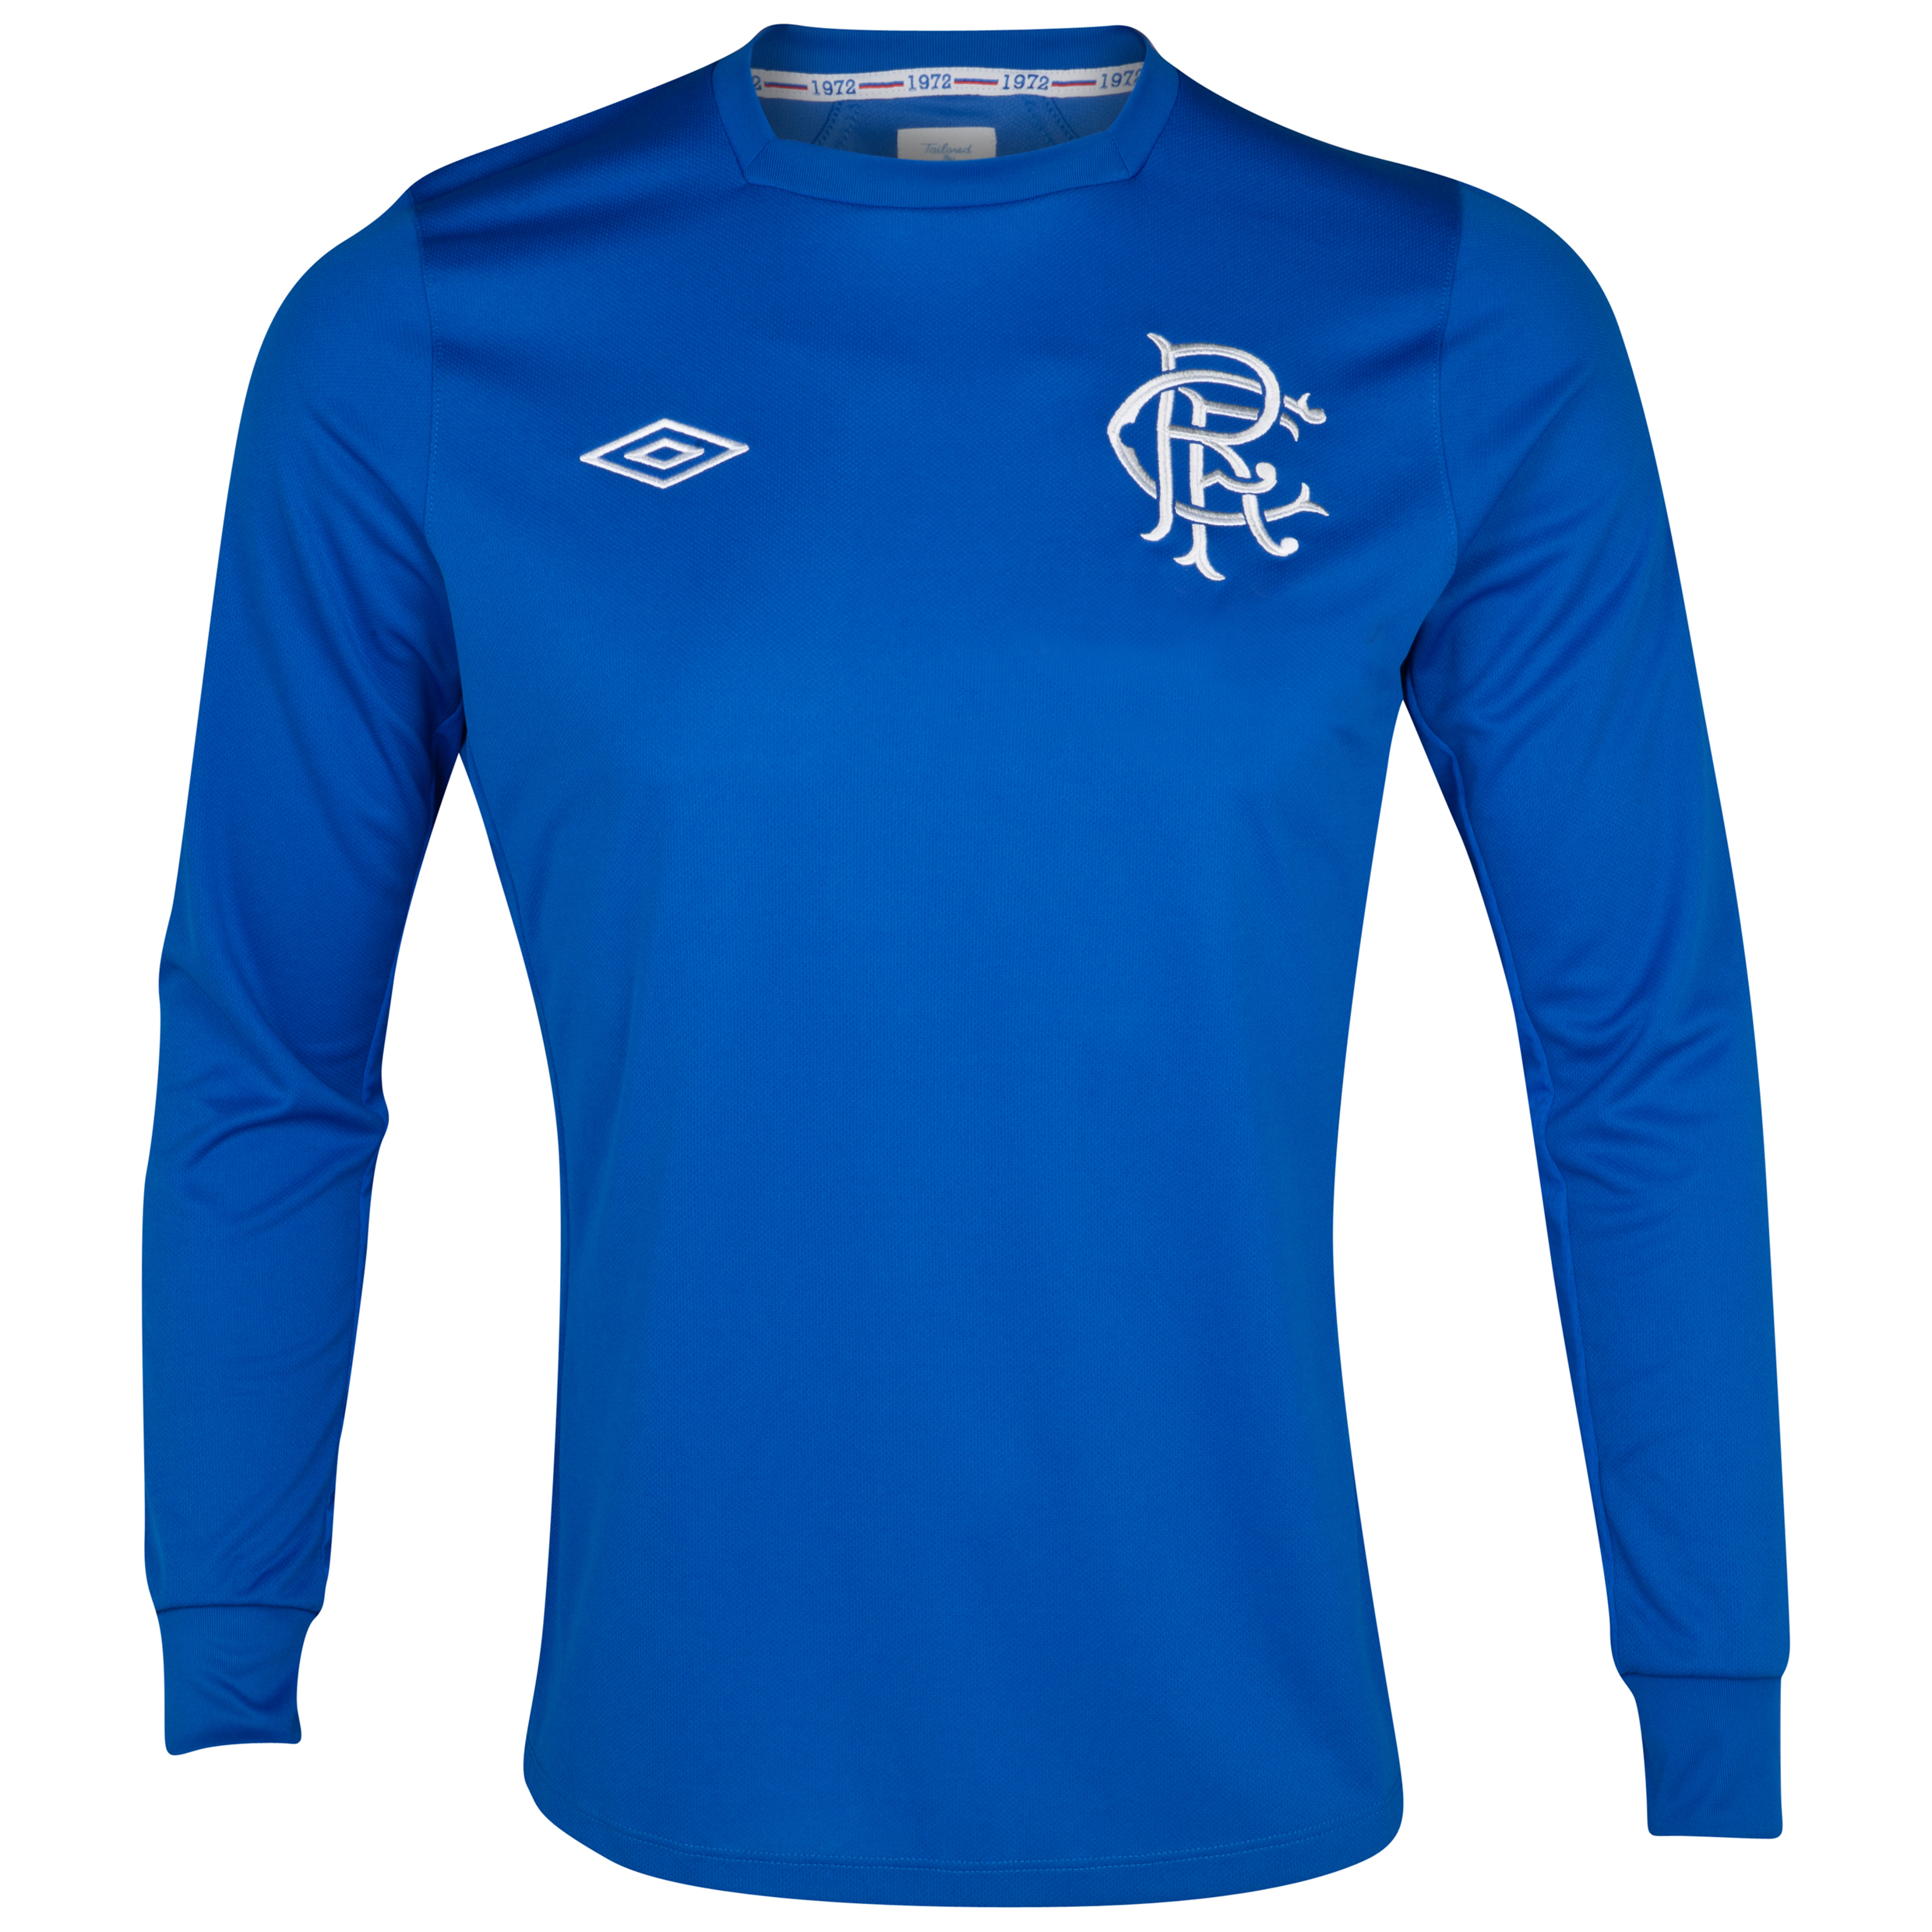 Glasgow Rangers Home Shirt 2012/13 - Long Sleeve - Kids